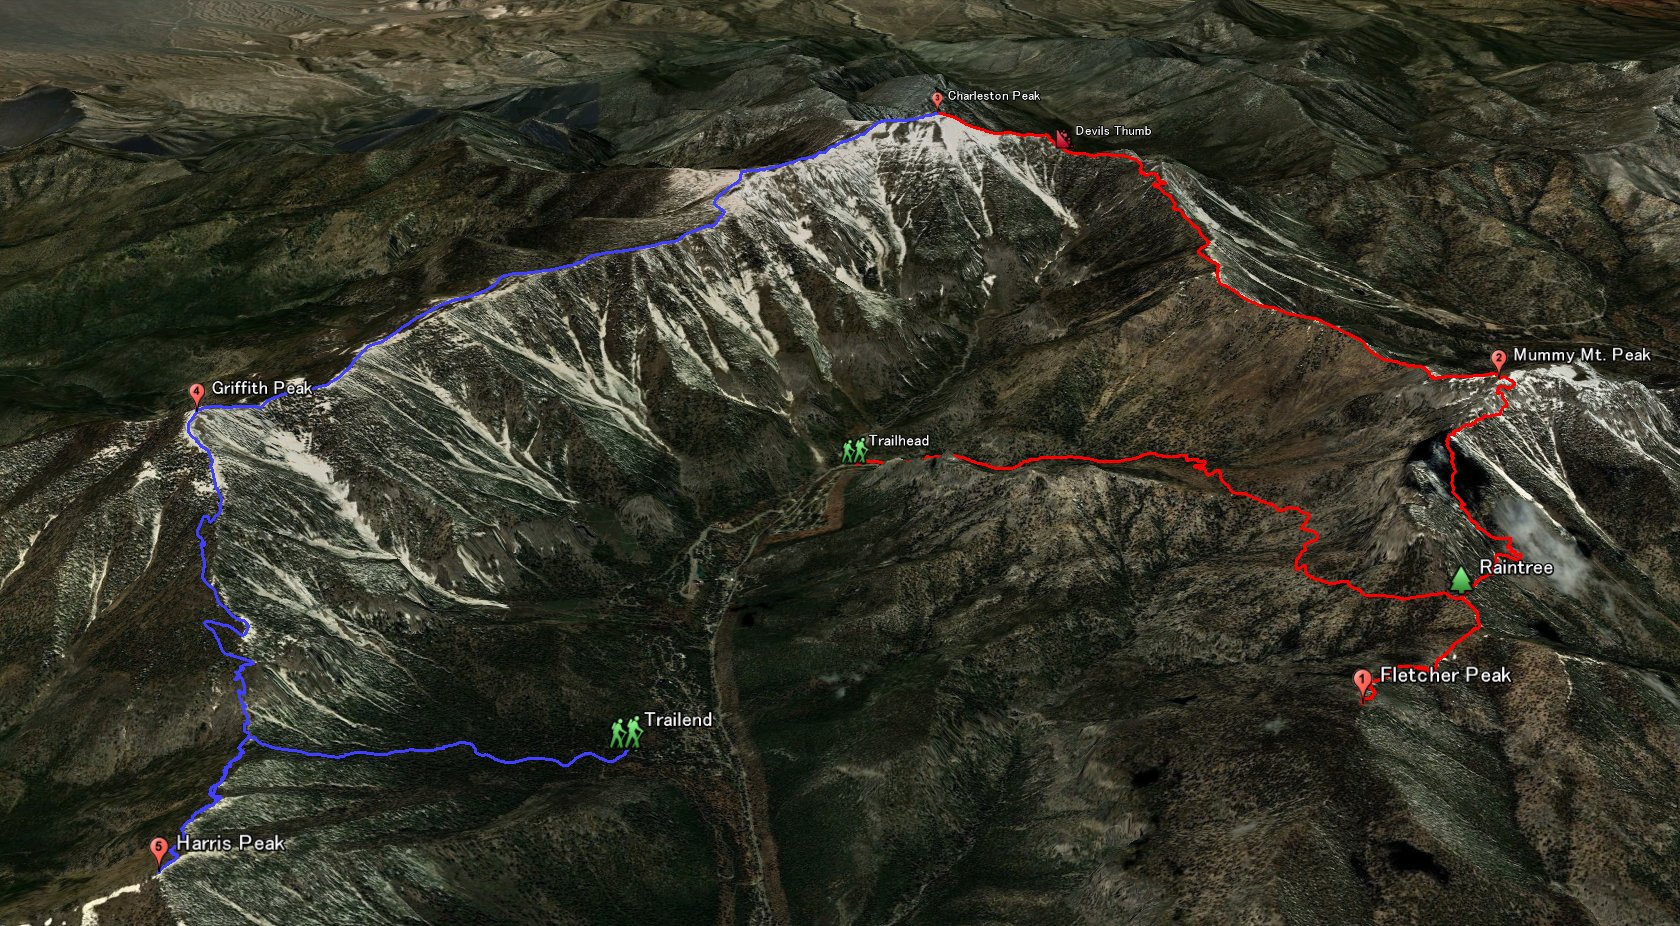 5 Peaks in 1 Day 08/12/2012 on